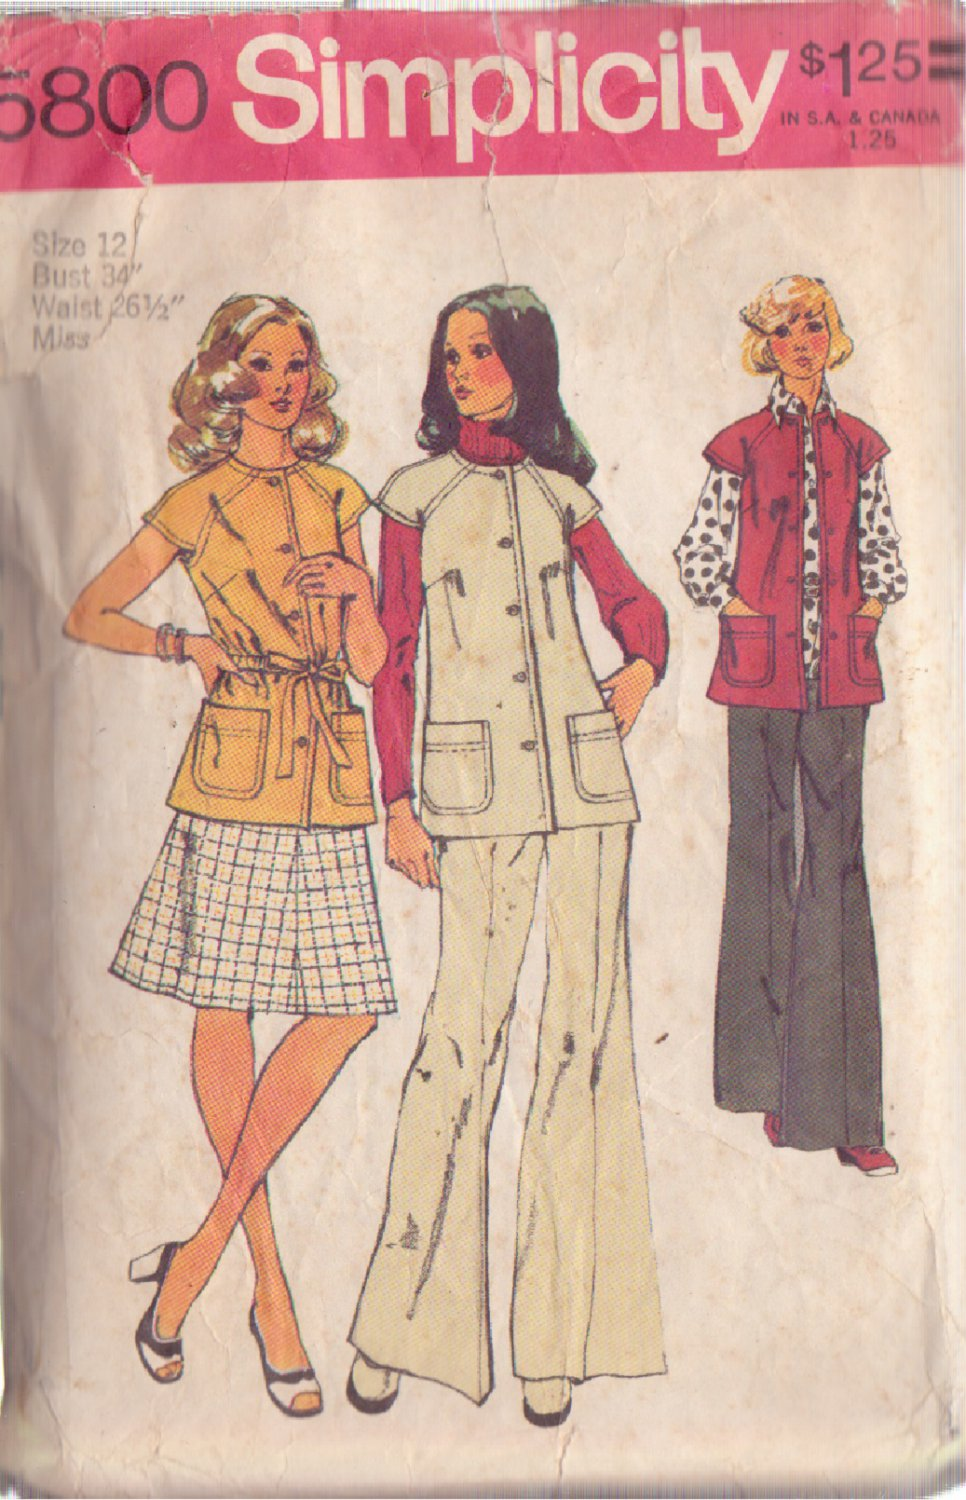 SIMPLICITY VINTAGE PATTERN 5800 SIZE 12 MISSES' VEST SKIRT AND PANTS